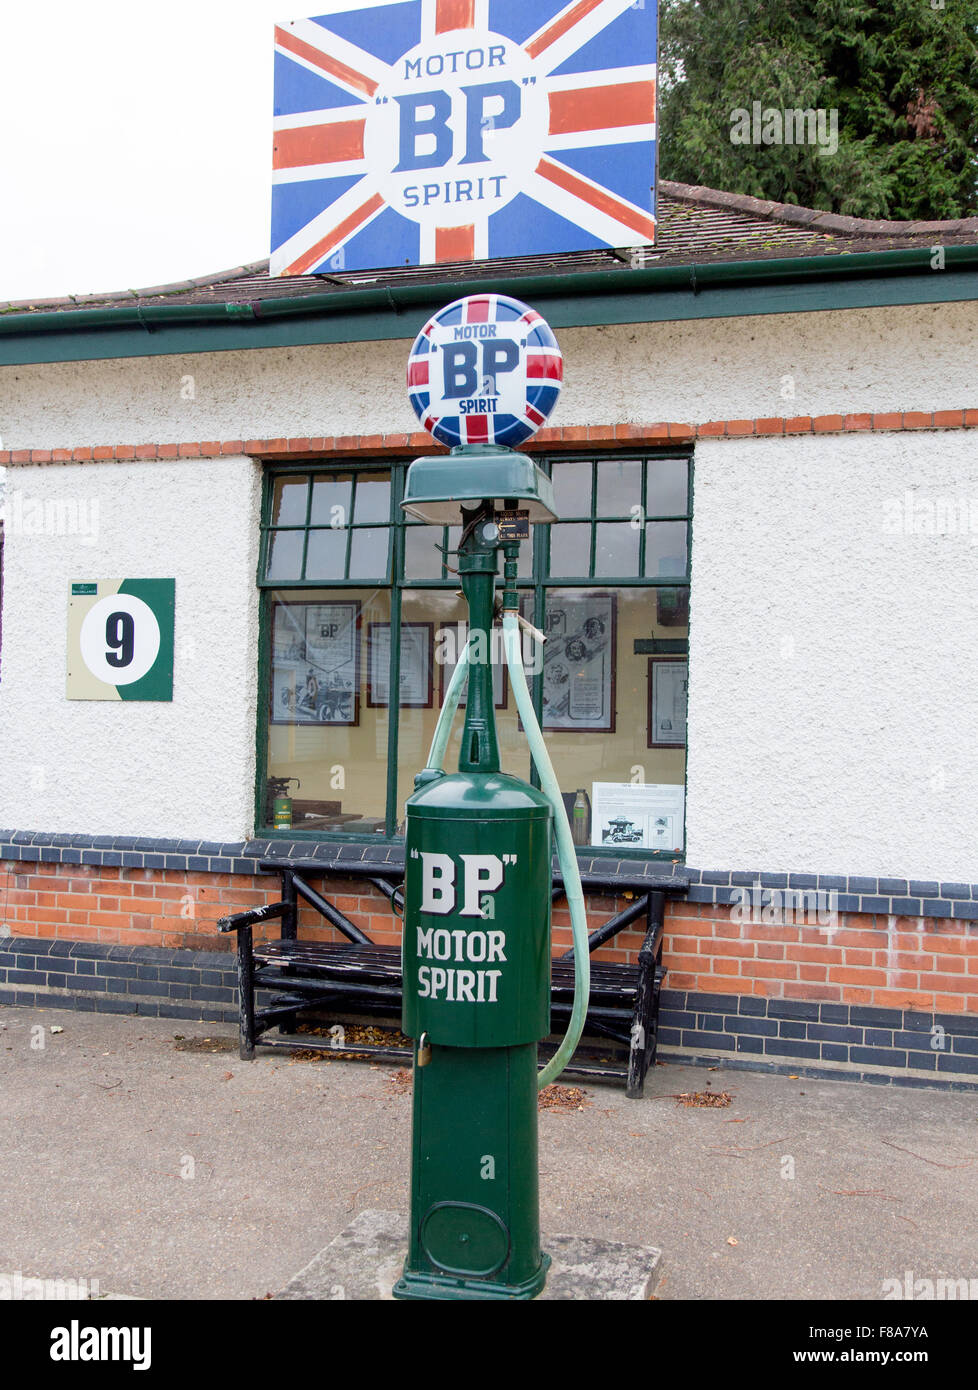 Antique BP Petrol Pump Brooklands Museum Weybridge Surrey UK Stock Photo